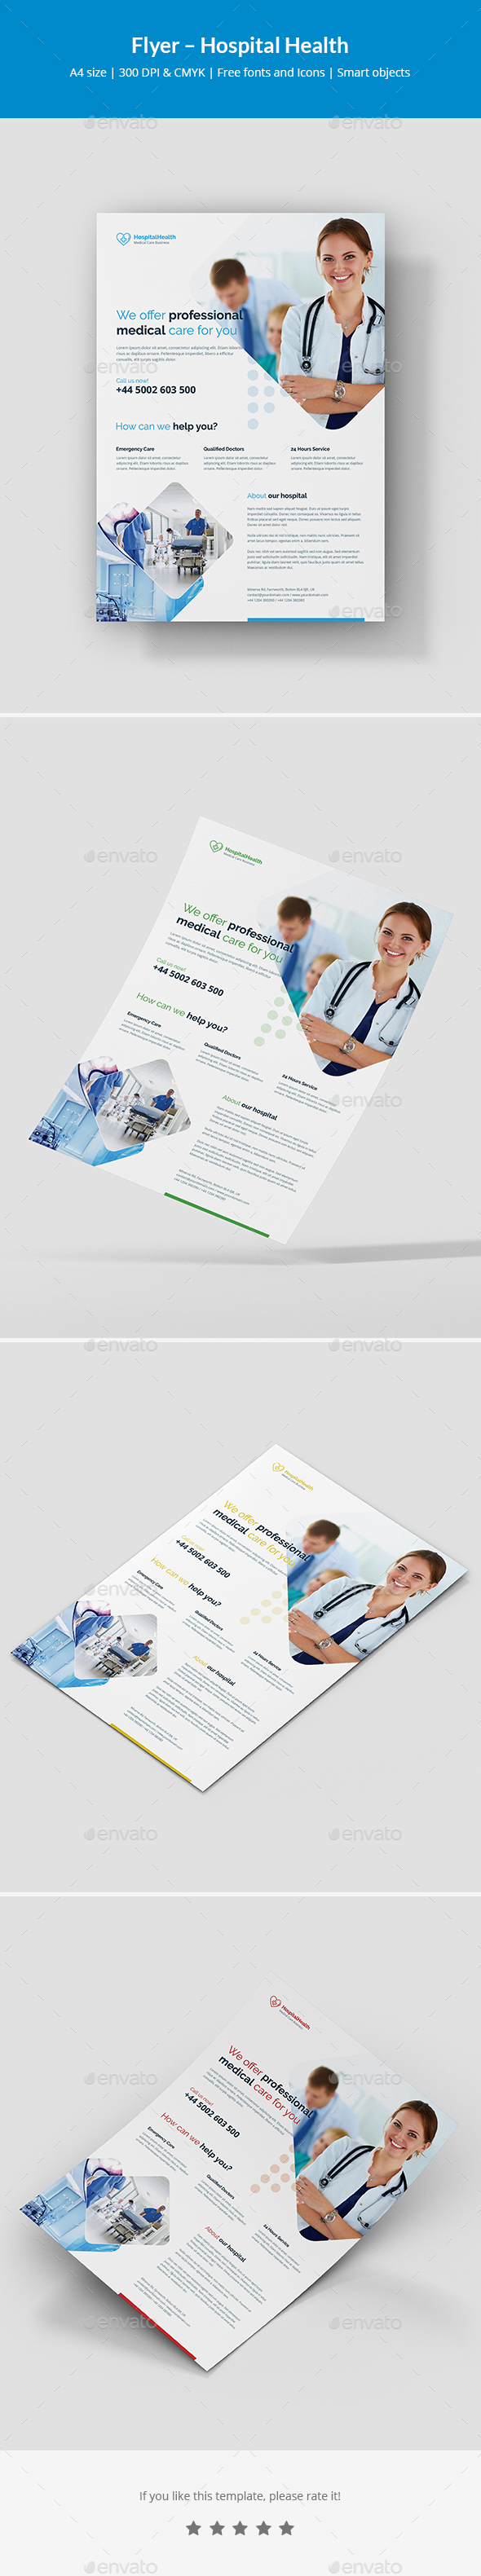 Flyer – Hospital Health - Corporate Flyers